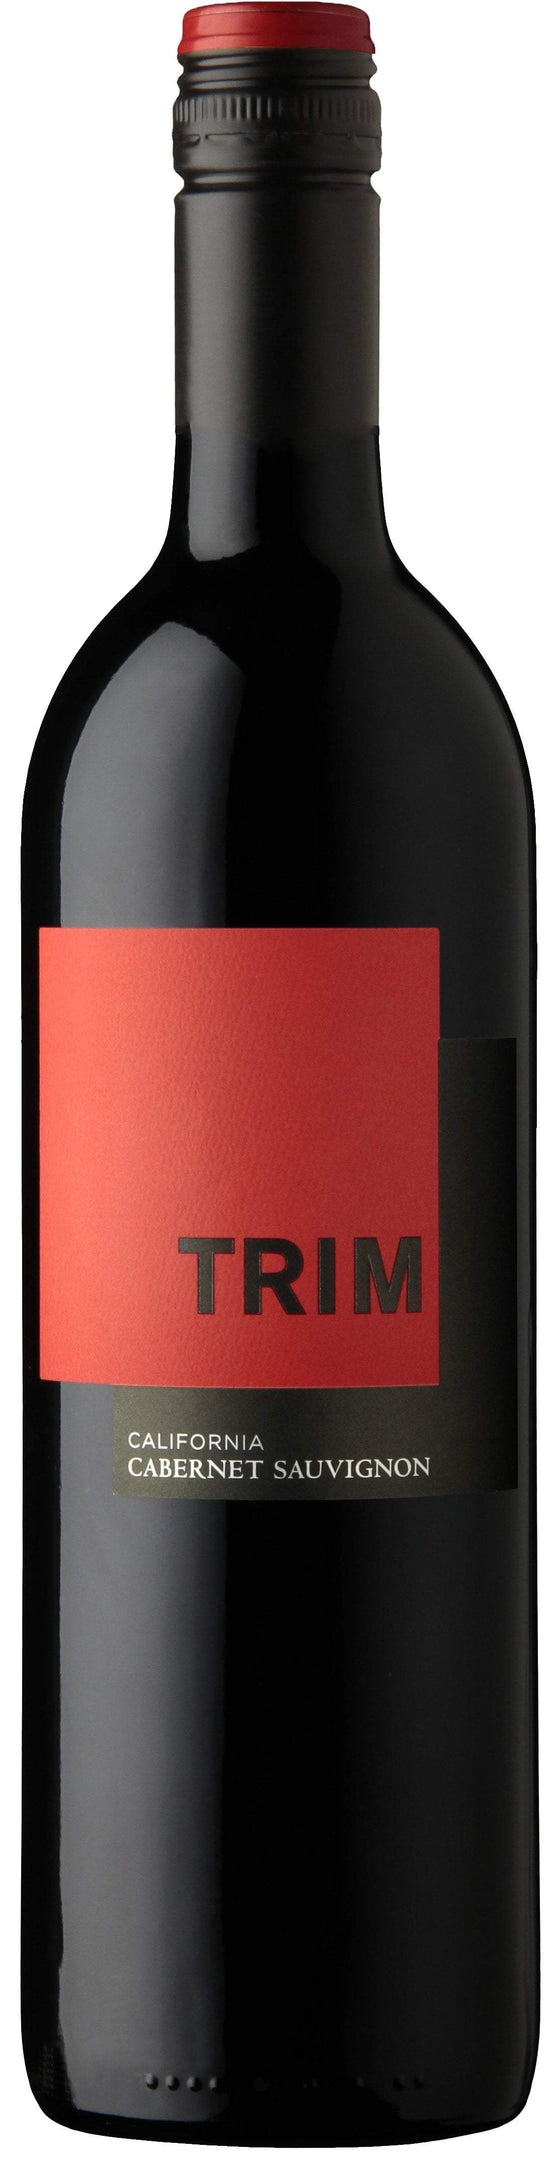 International Cabernet Sauvignon Trim Cabernet by Signorello